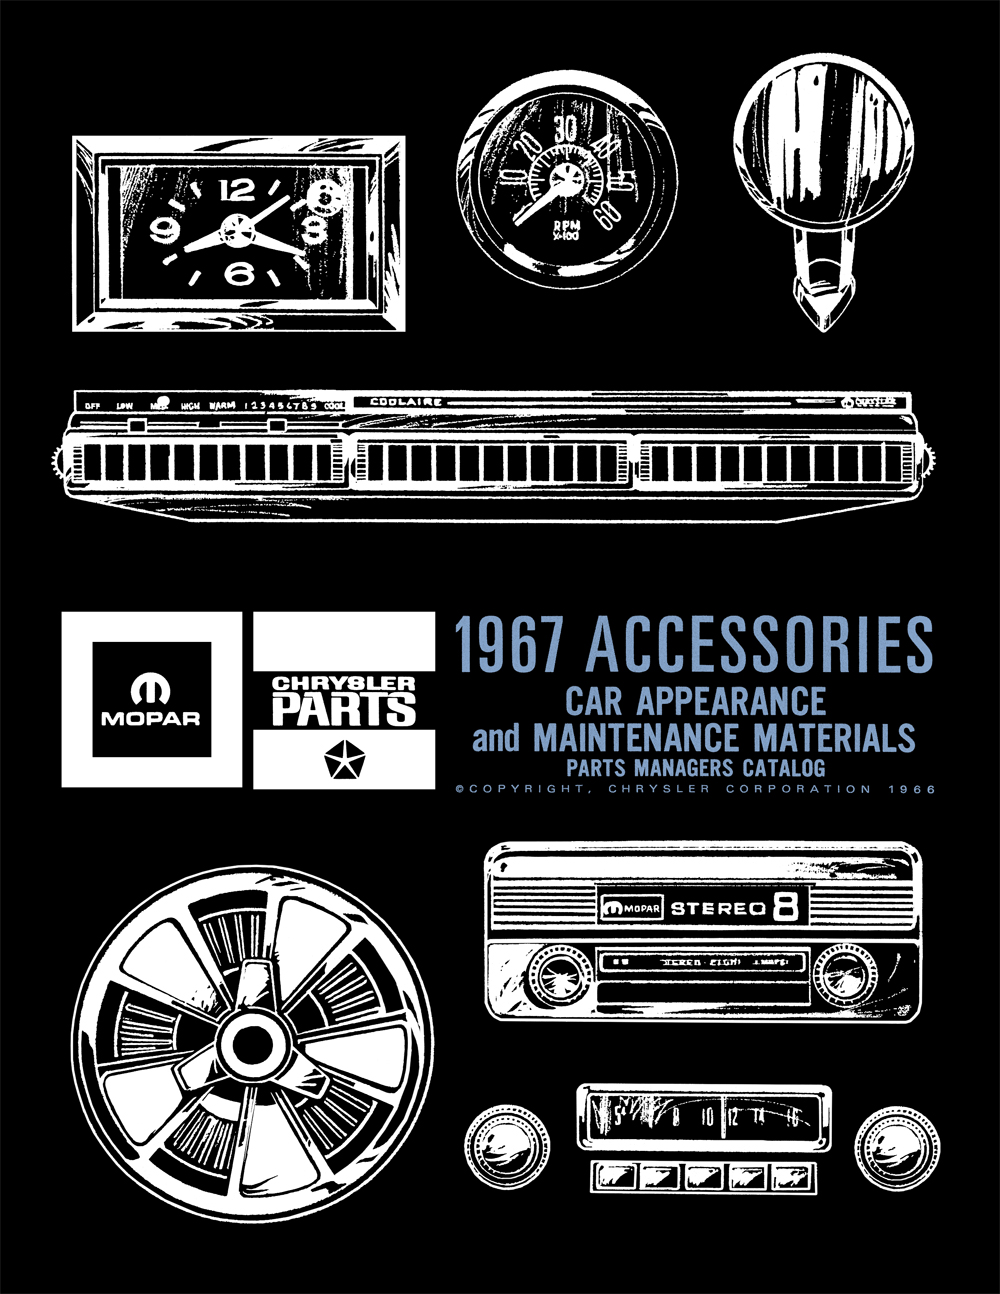 1967 MoPar Accessories Parts Catalog Reprint